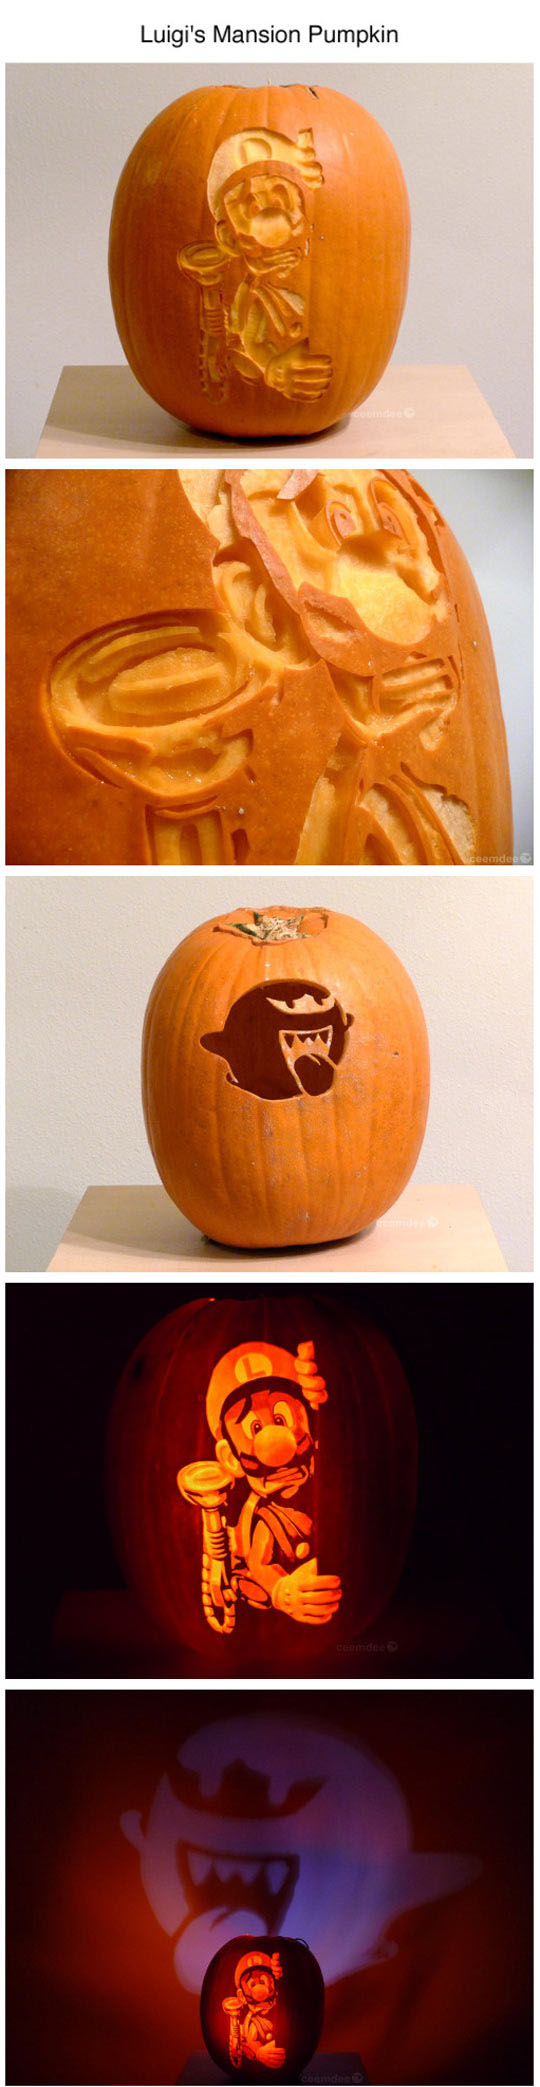 This Pumpkin Is Brilliant, Check Out The Last Picture